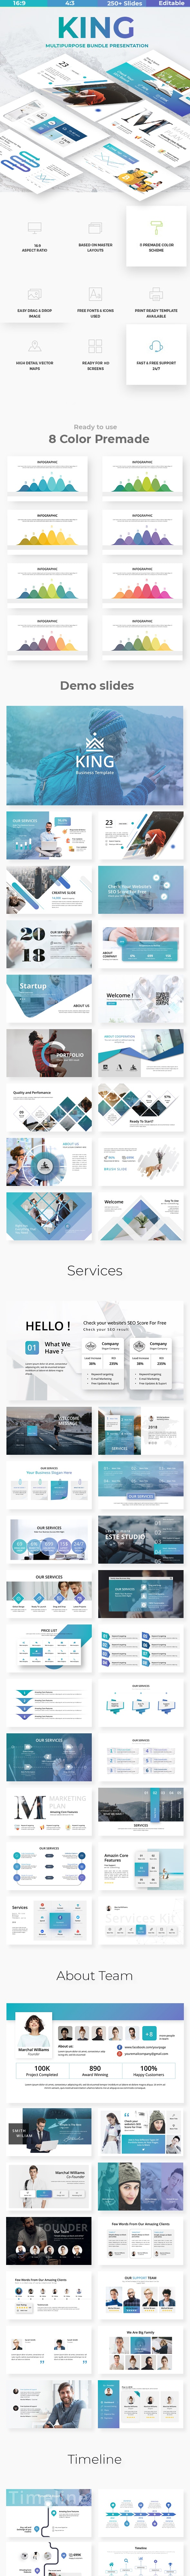 King Business Powerpoint Template - Miscellaneous PowerPoint Templates